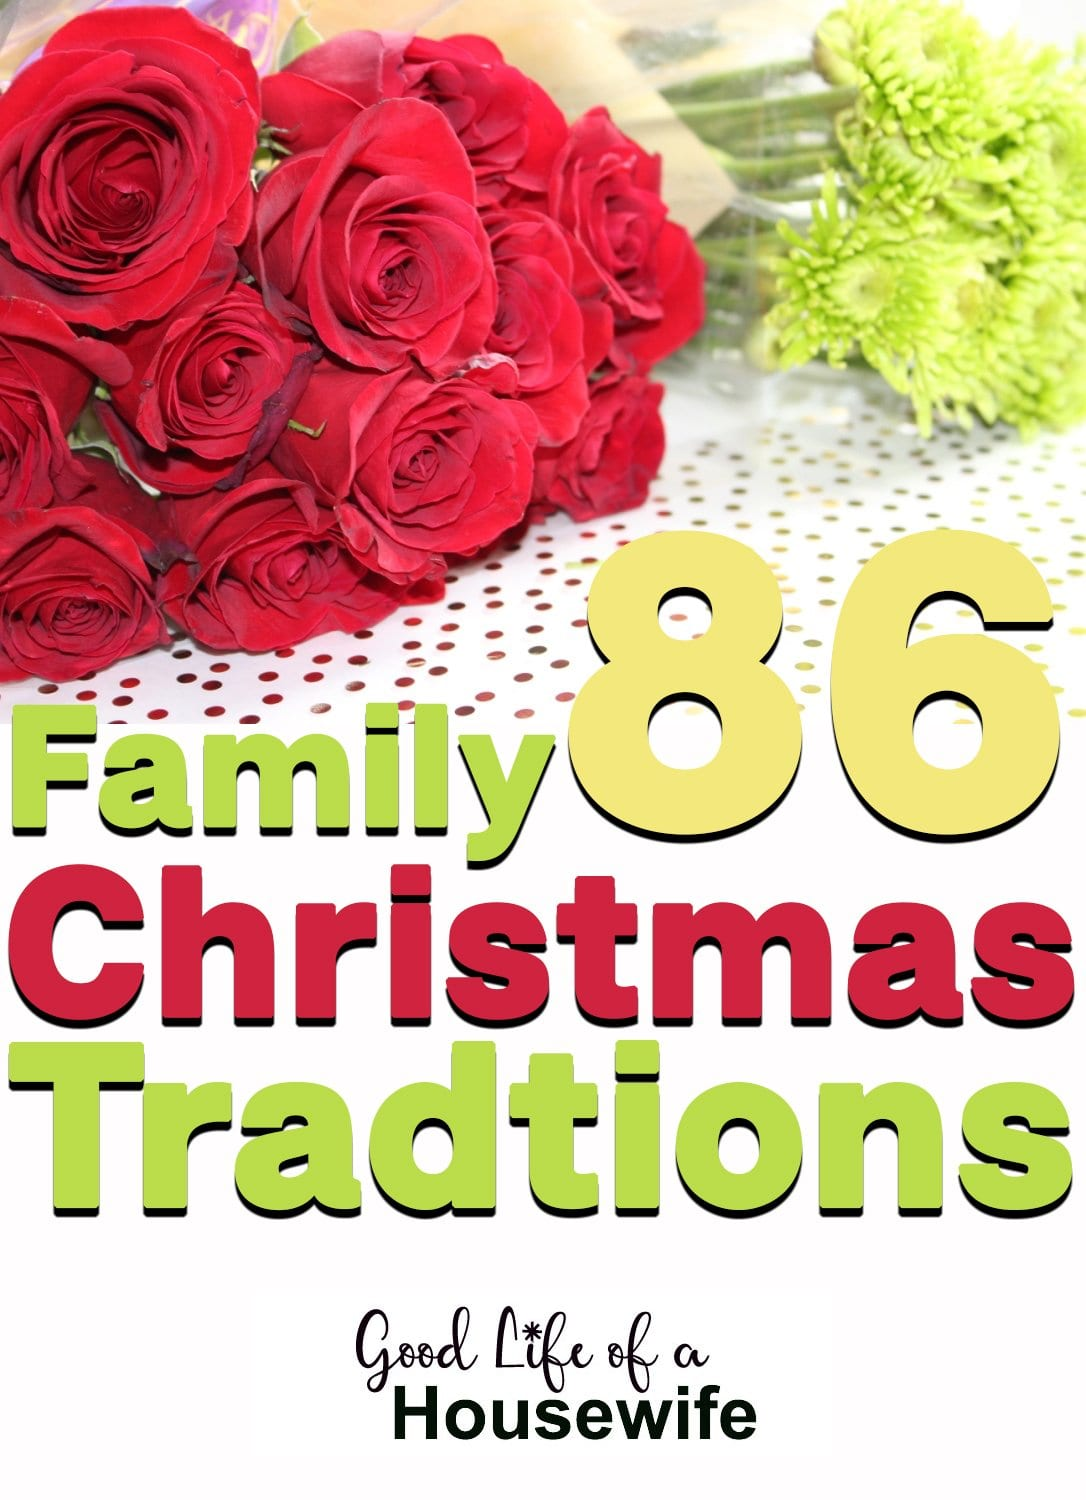 86 Traditions for the Christmas Season